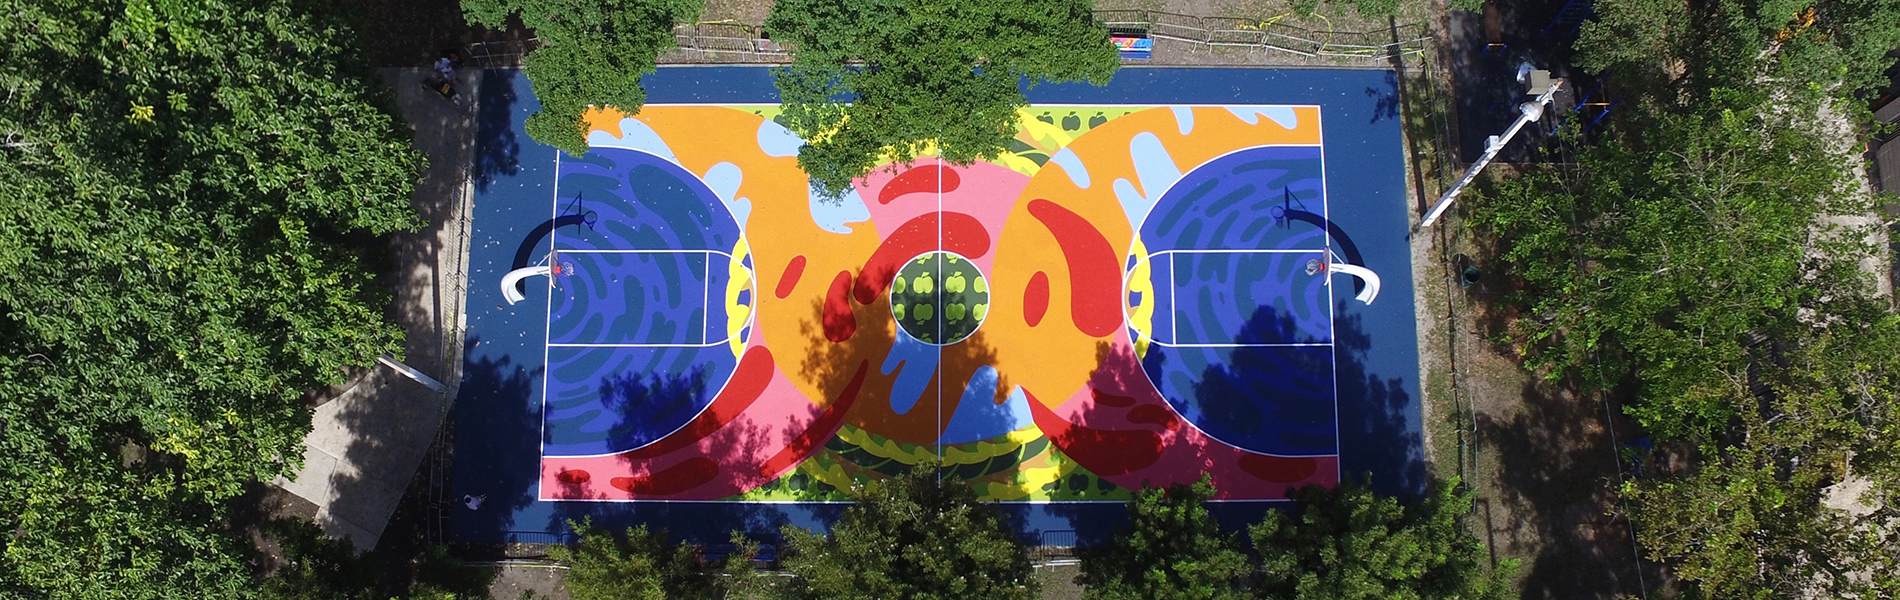 A painted basketball court